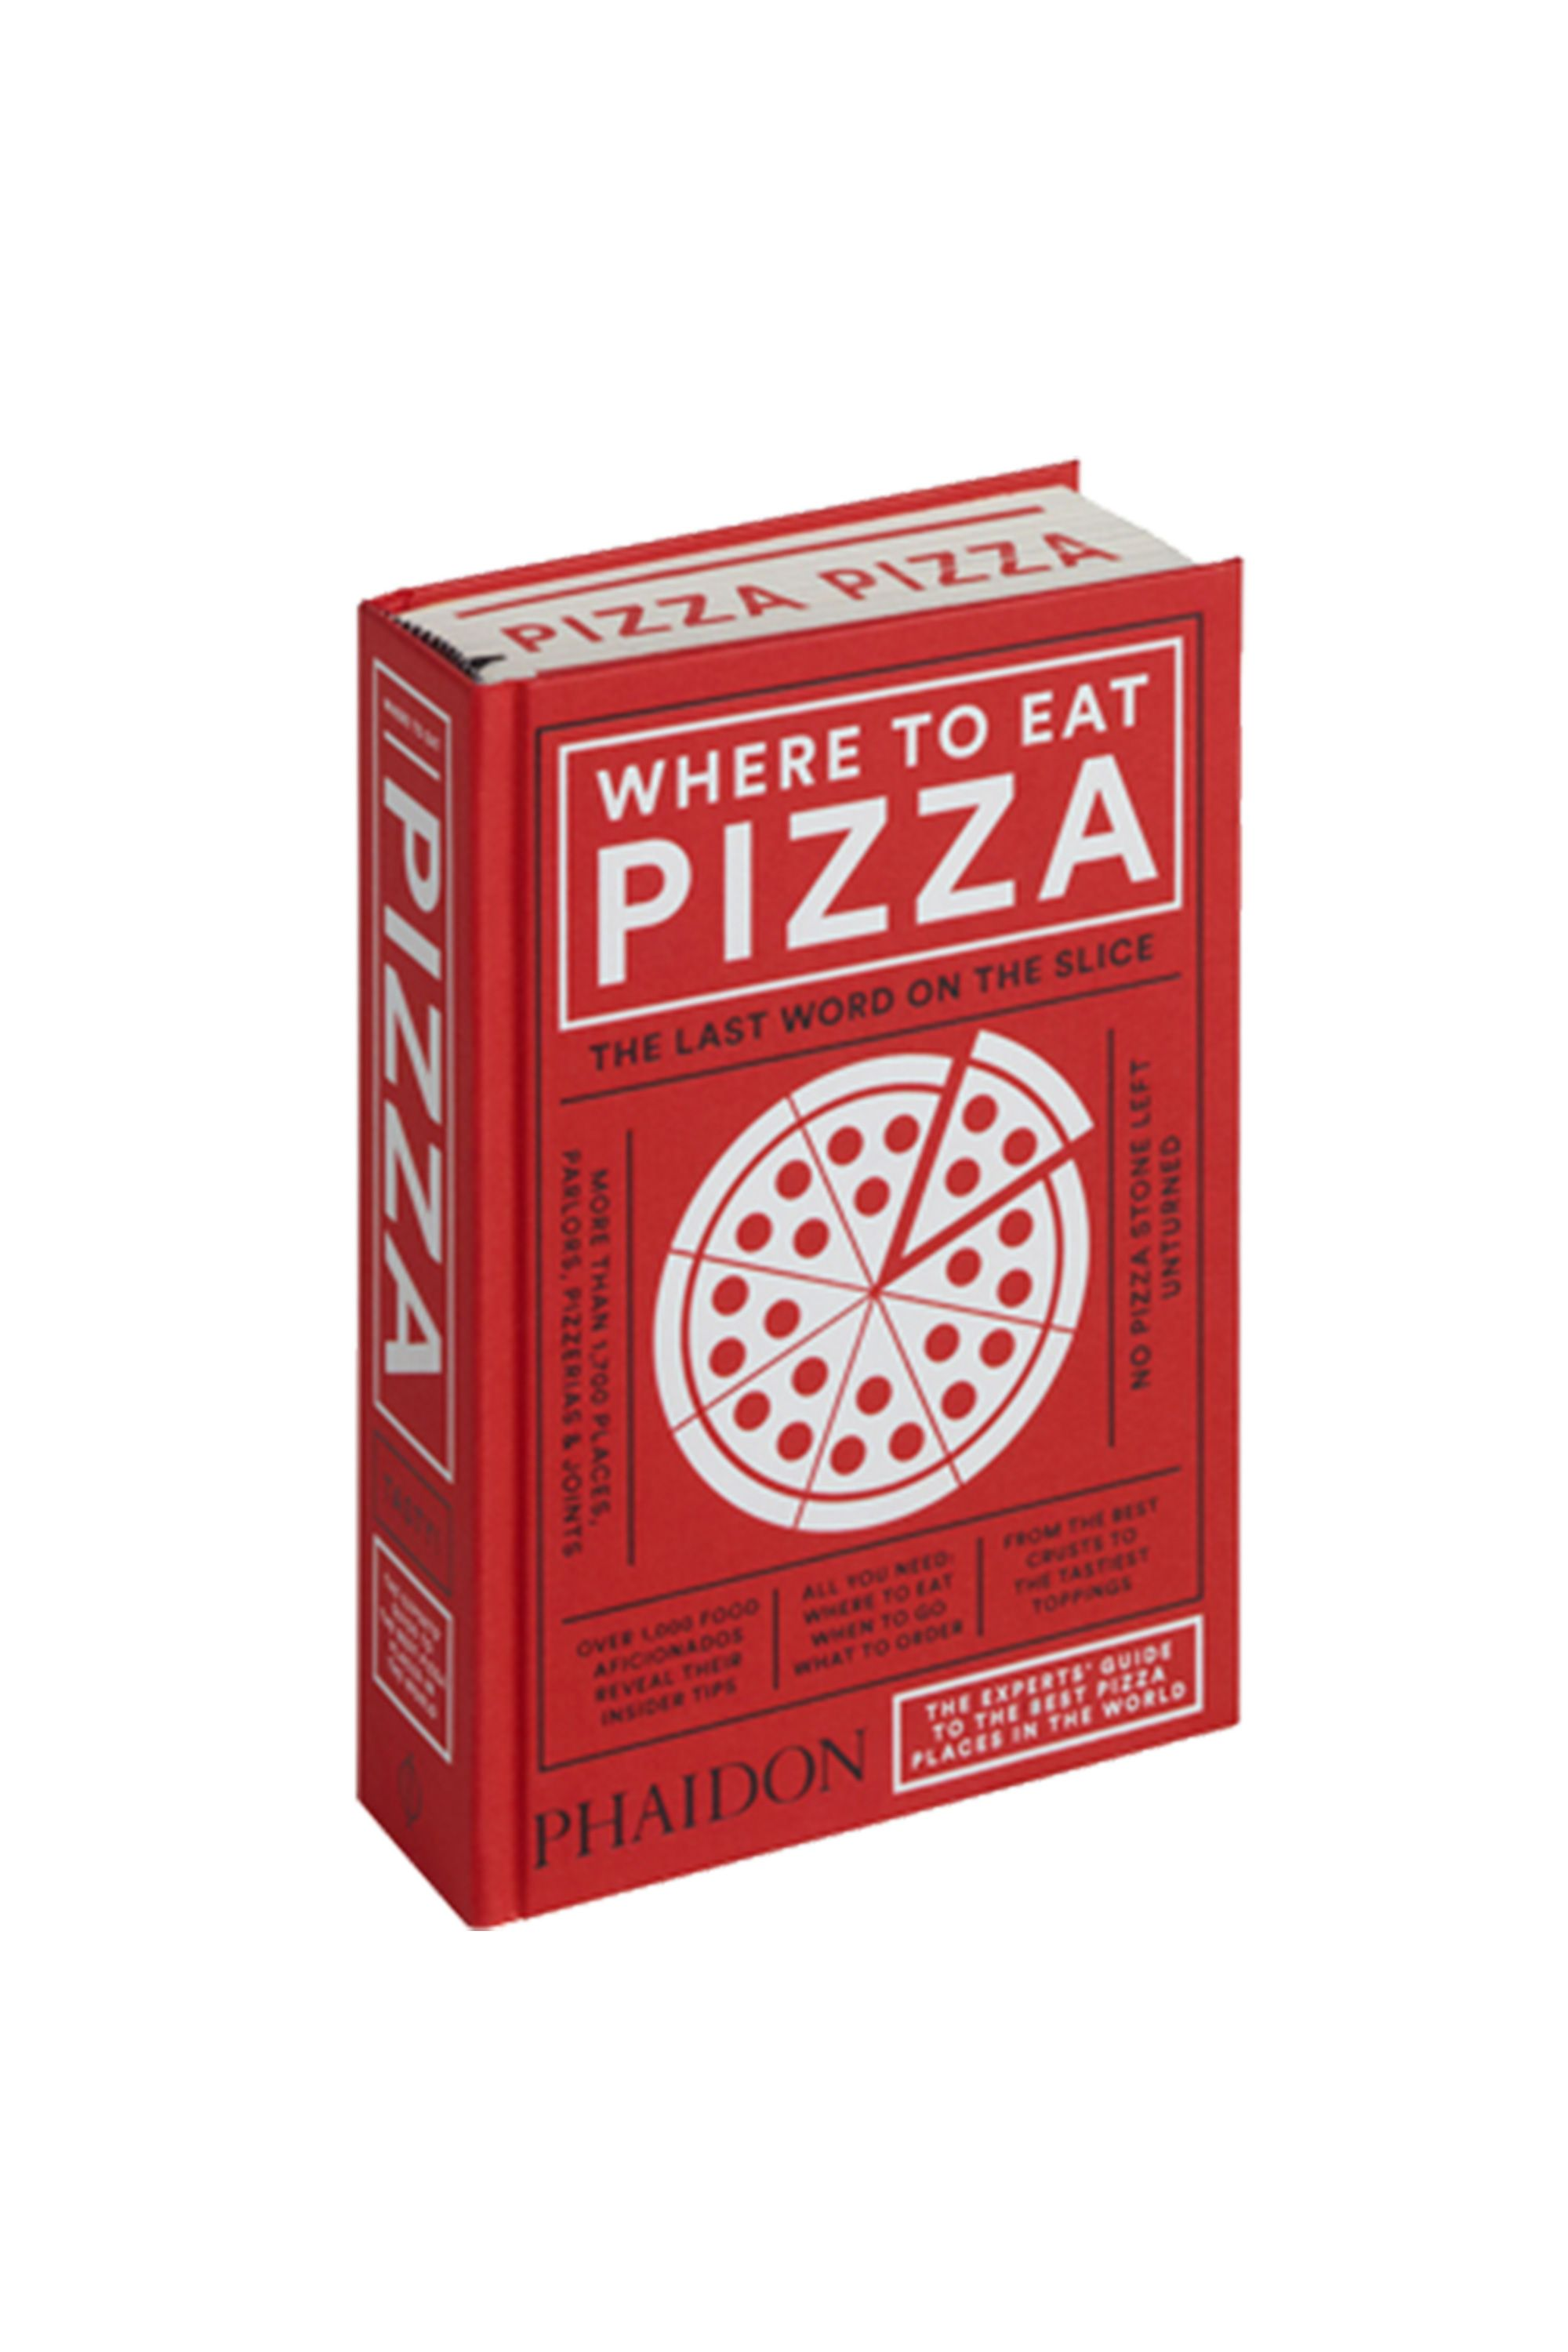 Where to Eat Pizza Book